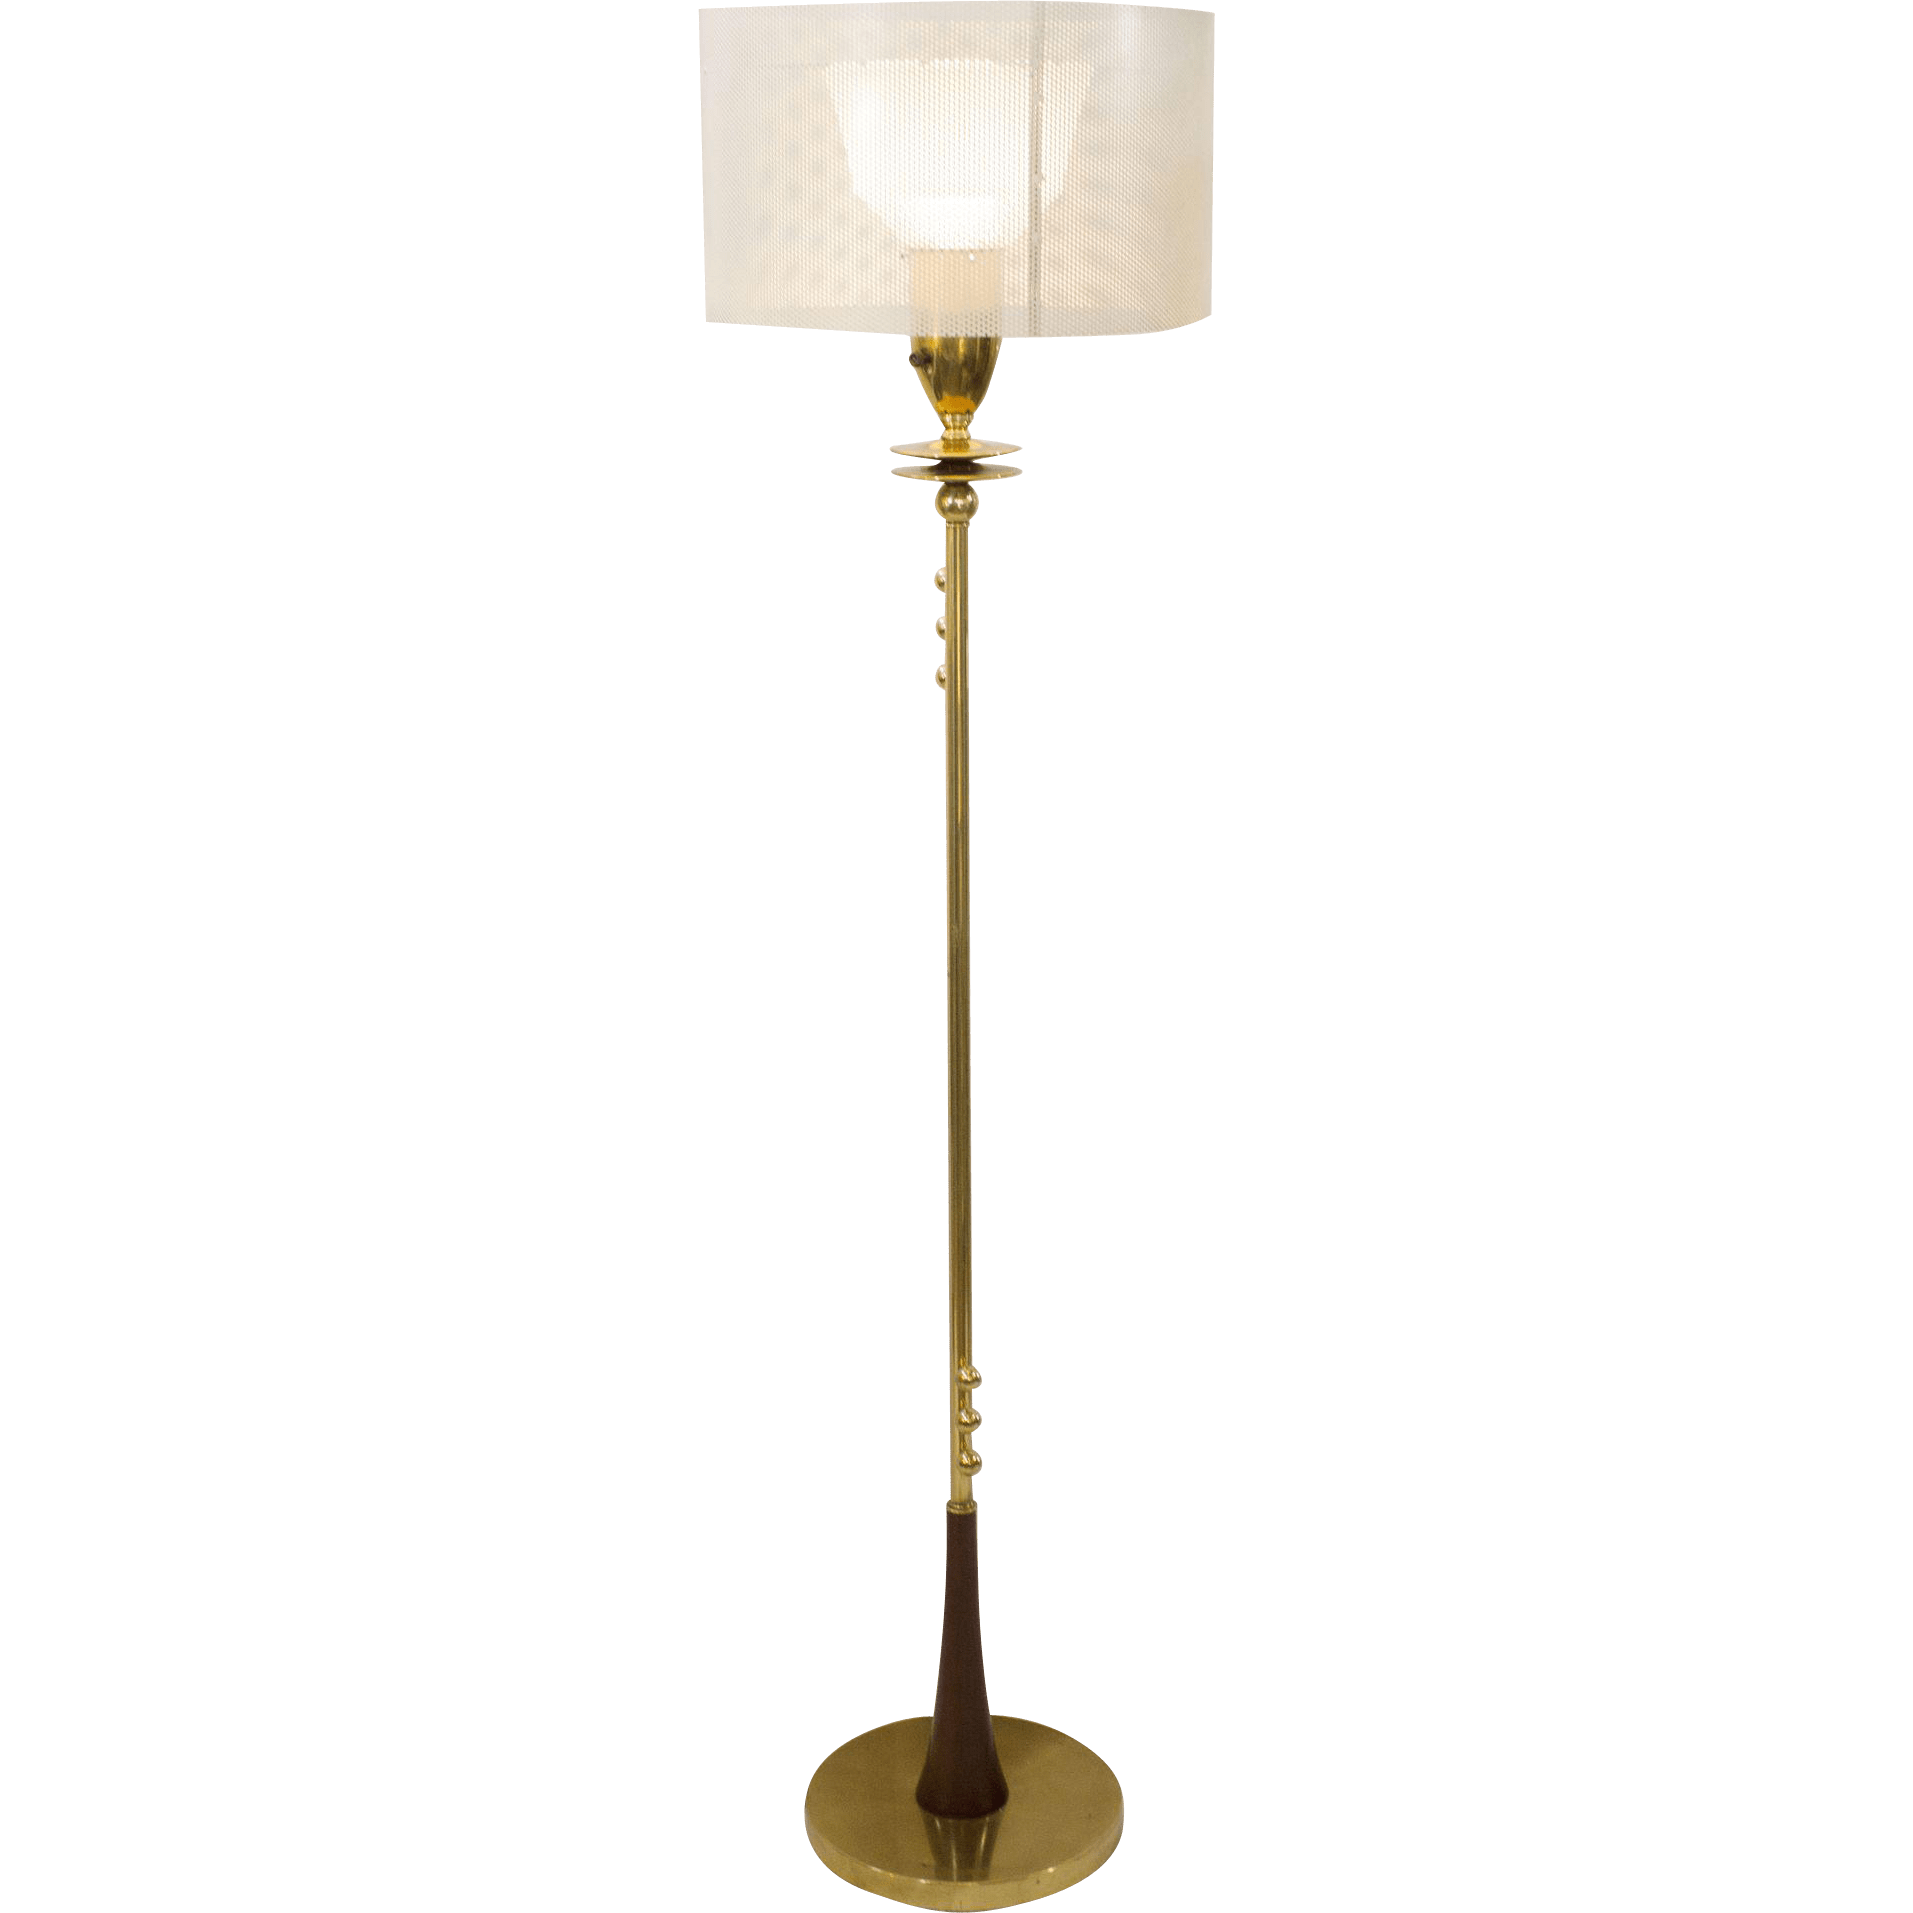 MidCentury Modern Brass Floor Lamp with Perforated Shade